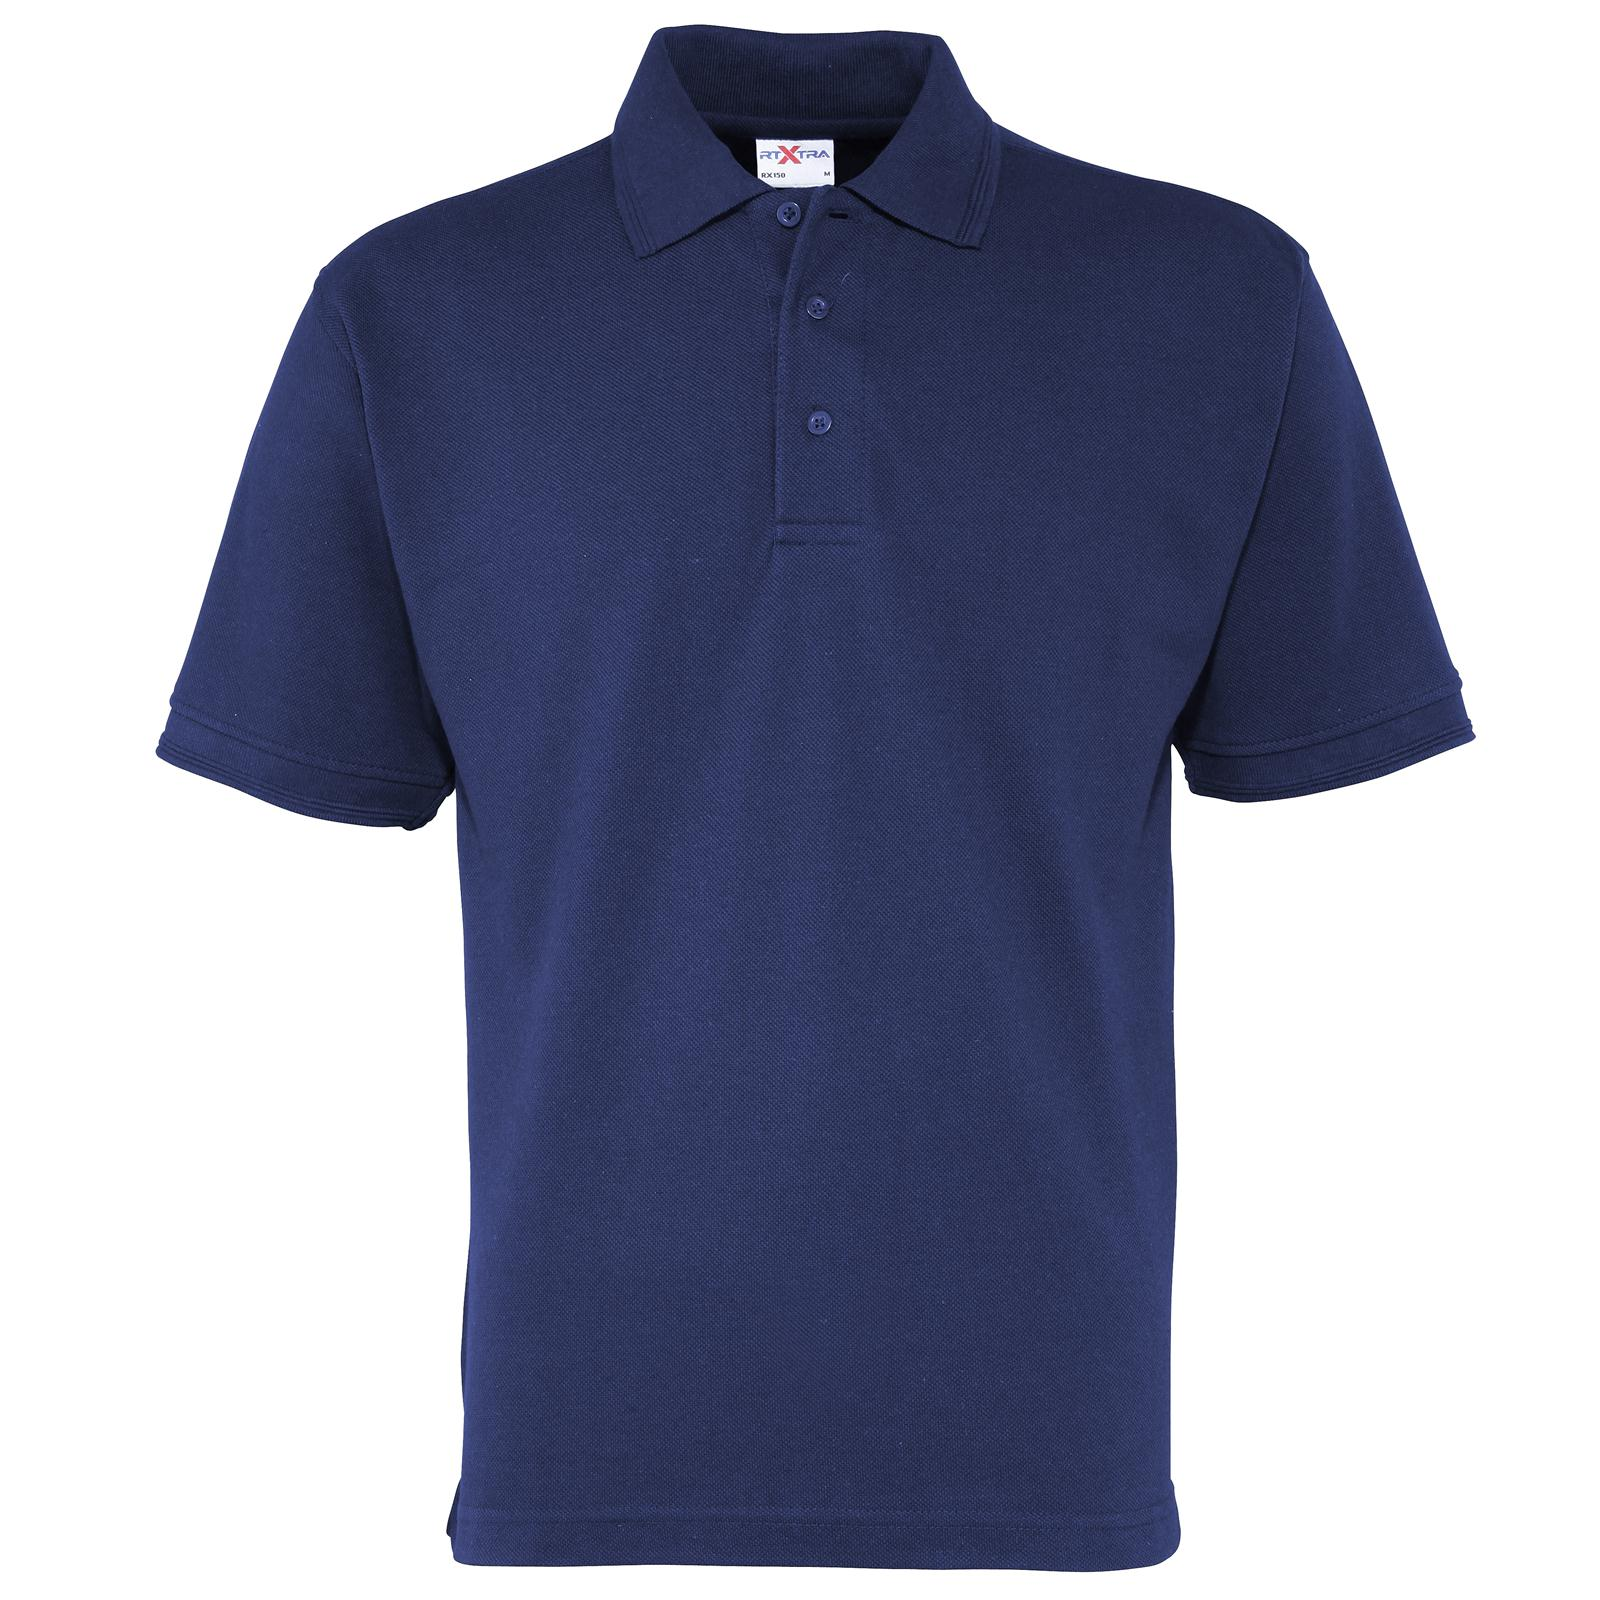 4XL New RTXTRA Mens Premium Casual Classic Pique Polo Shirt in 6 Colours S